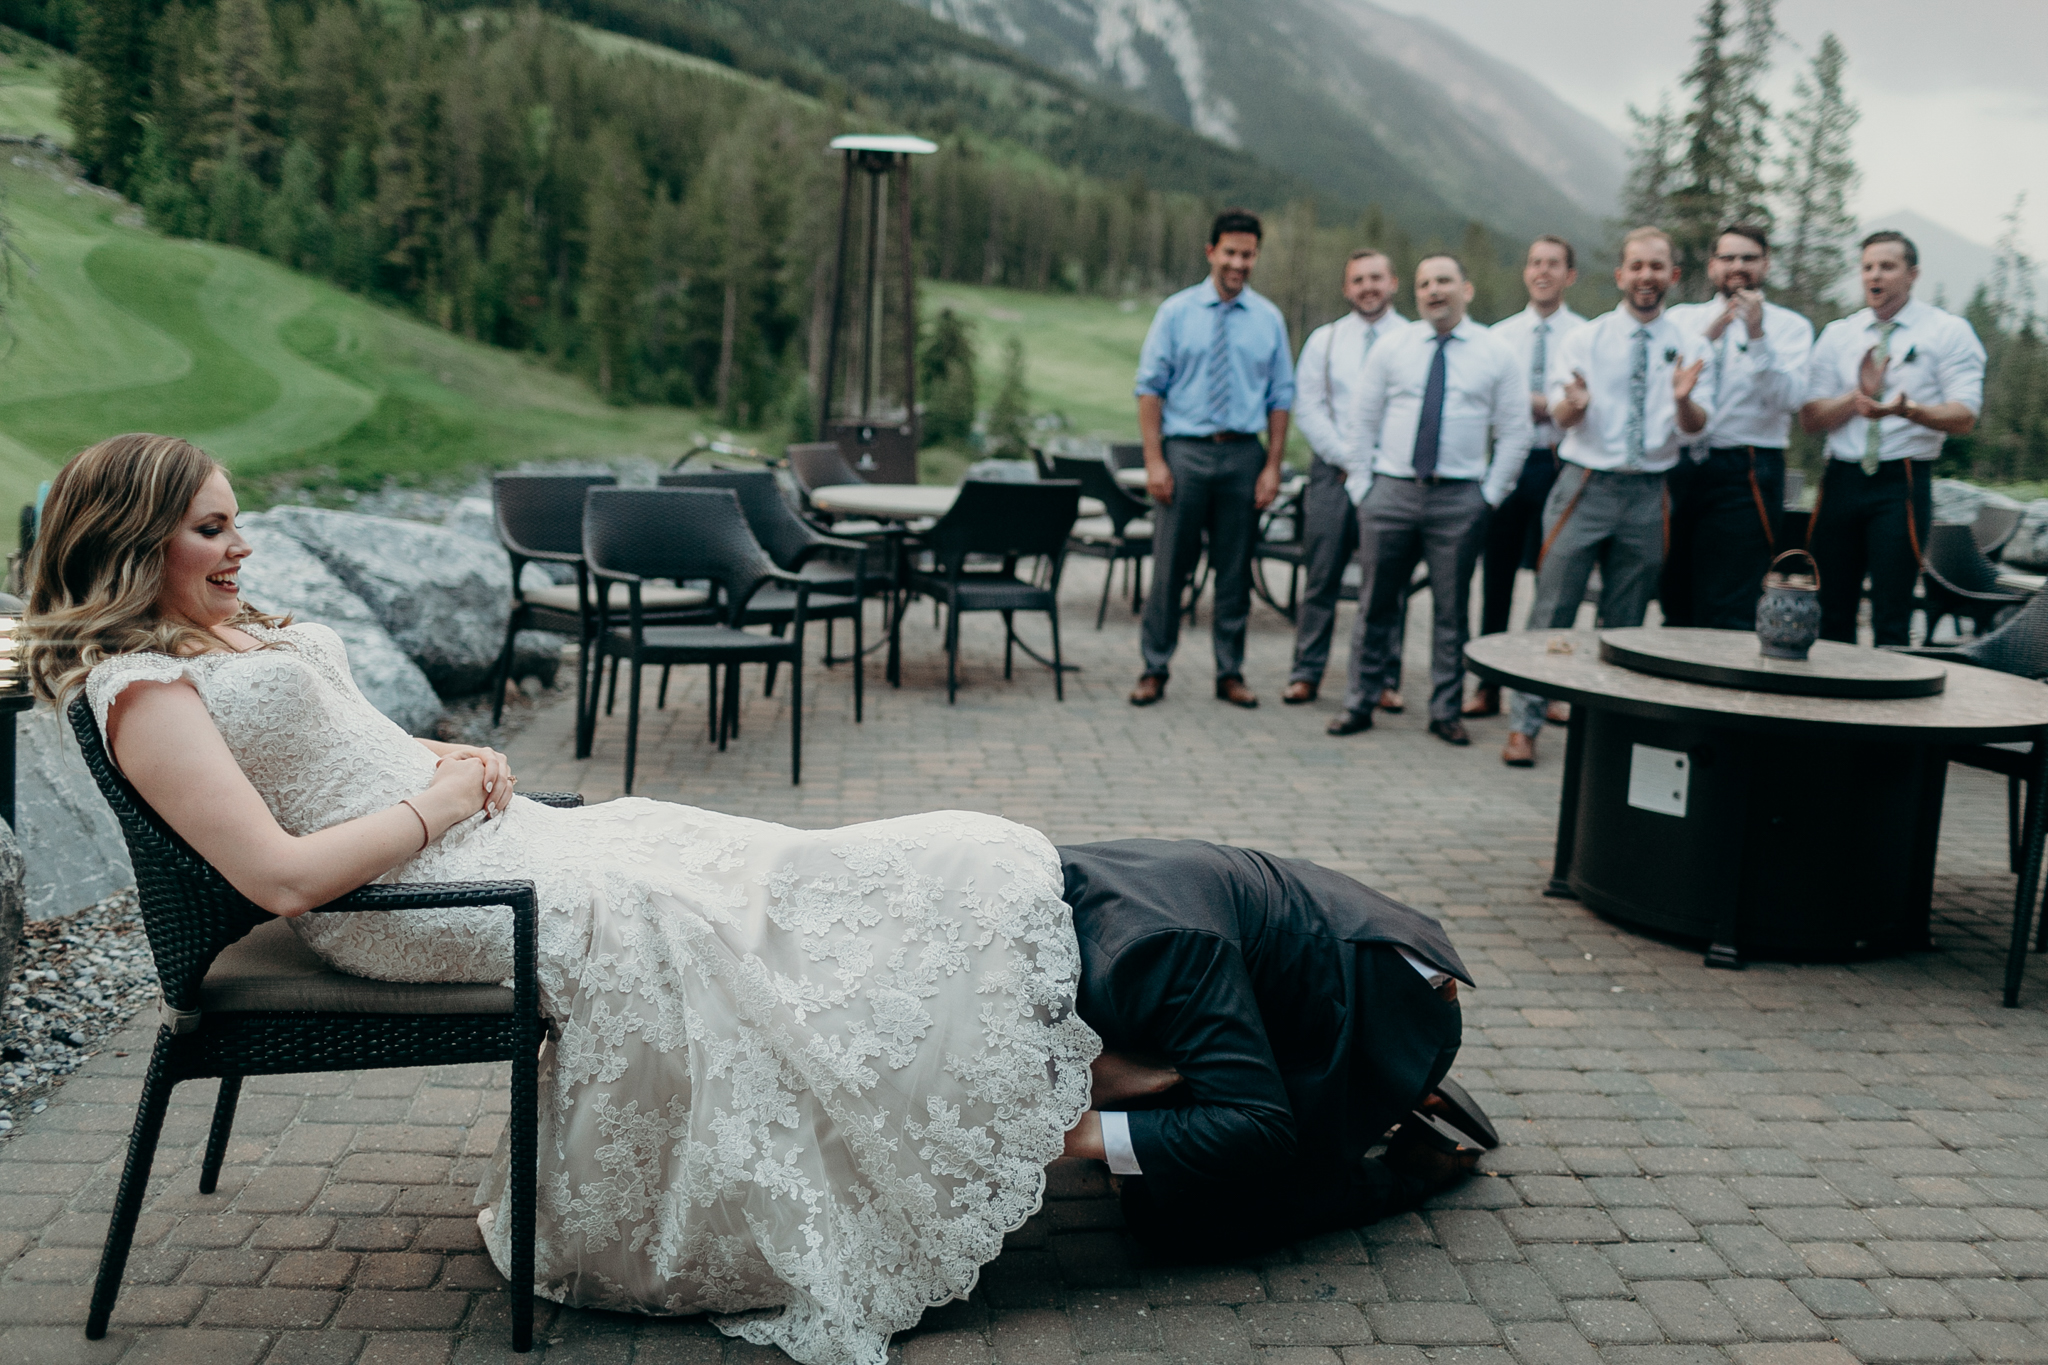 Wedding reception Silvertip Resort Canmore Alberta destination wedding photograph